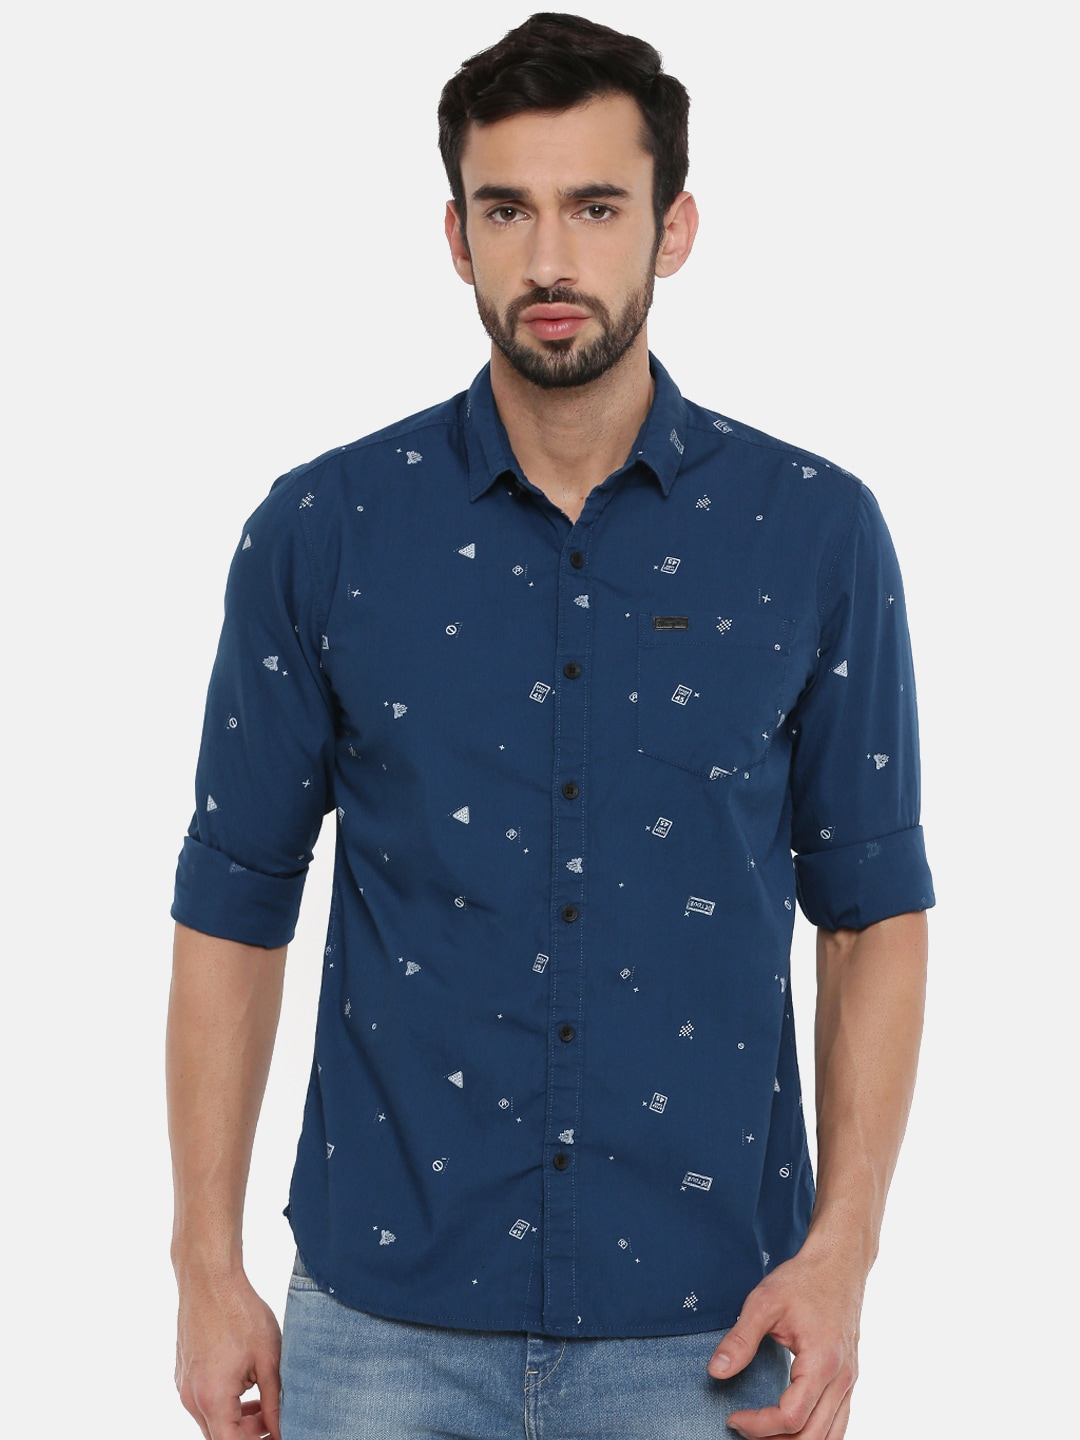 cc1ab9a66 Casual Shirts for Men - Buy Men Casual Shirt Online in India